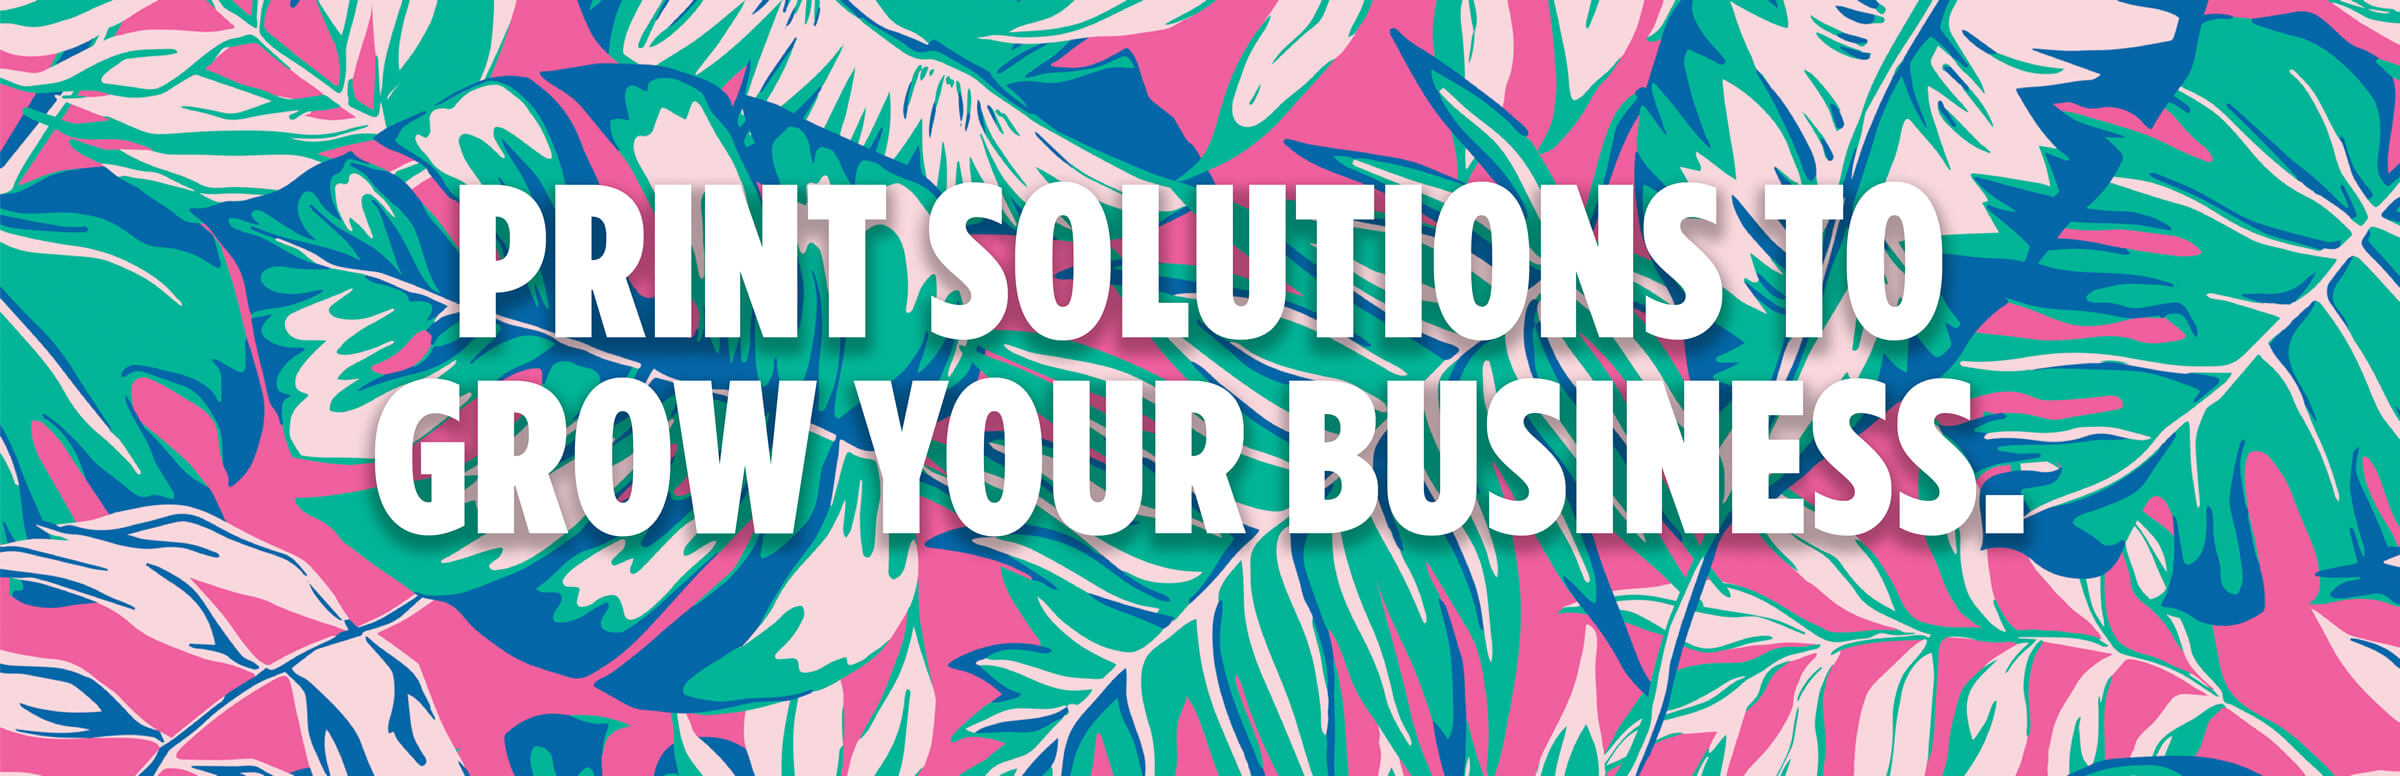 Print Solutions To Grow Your Business.